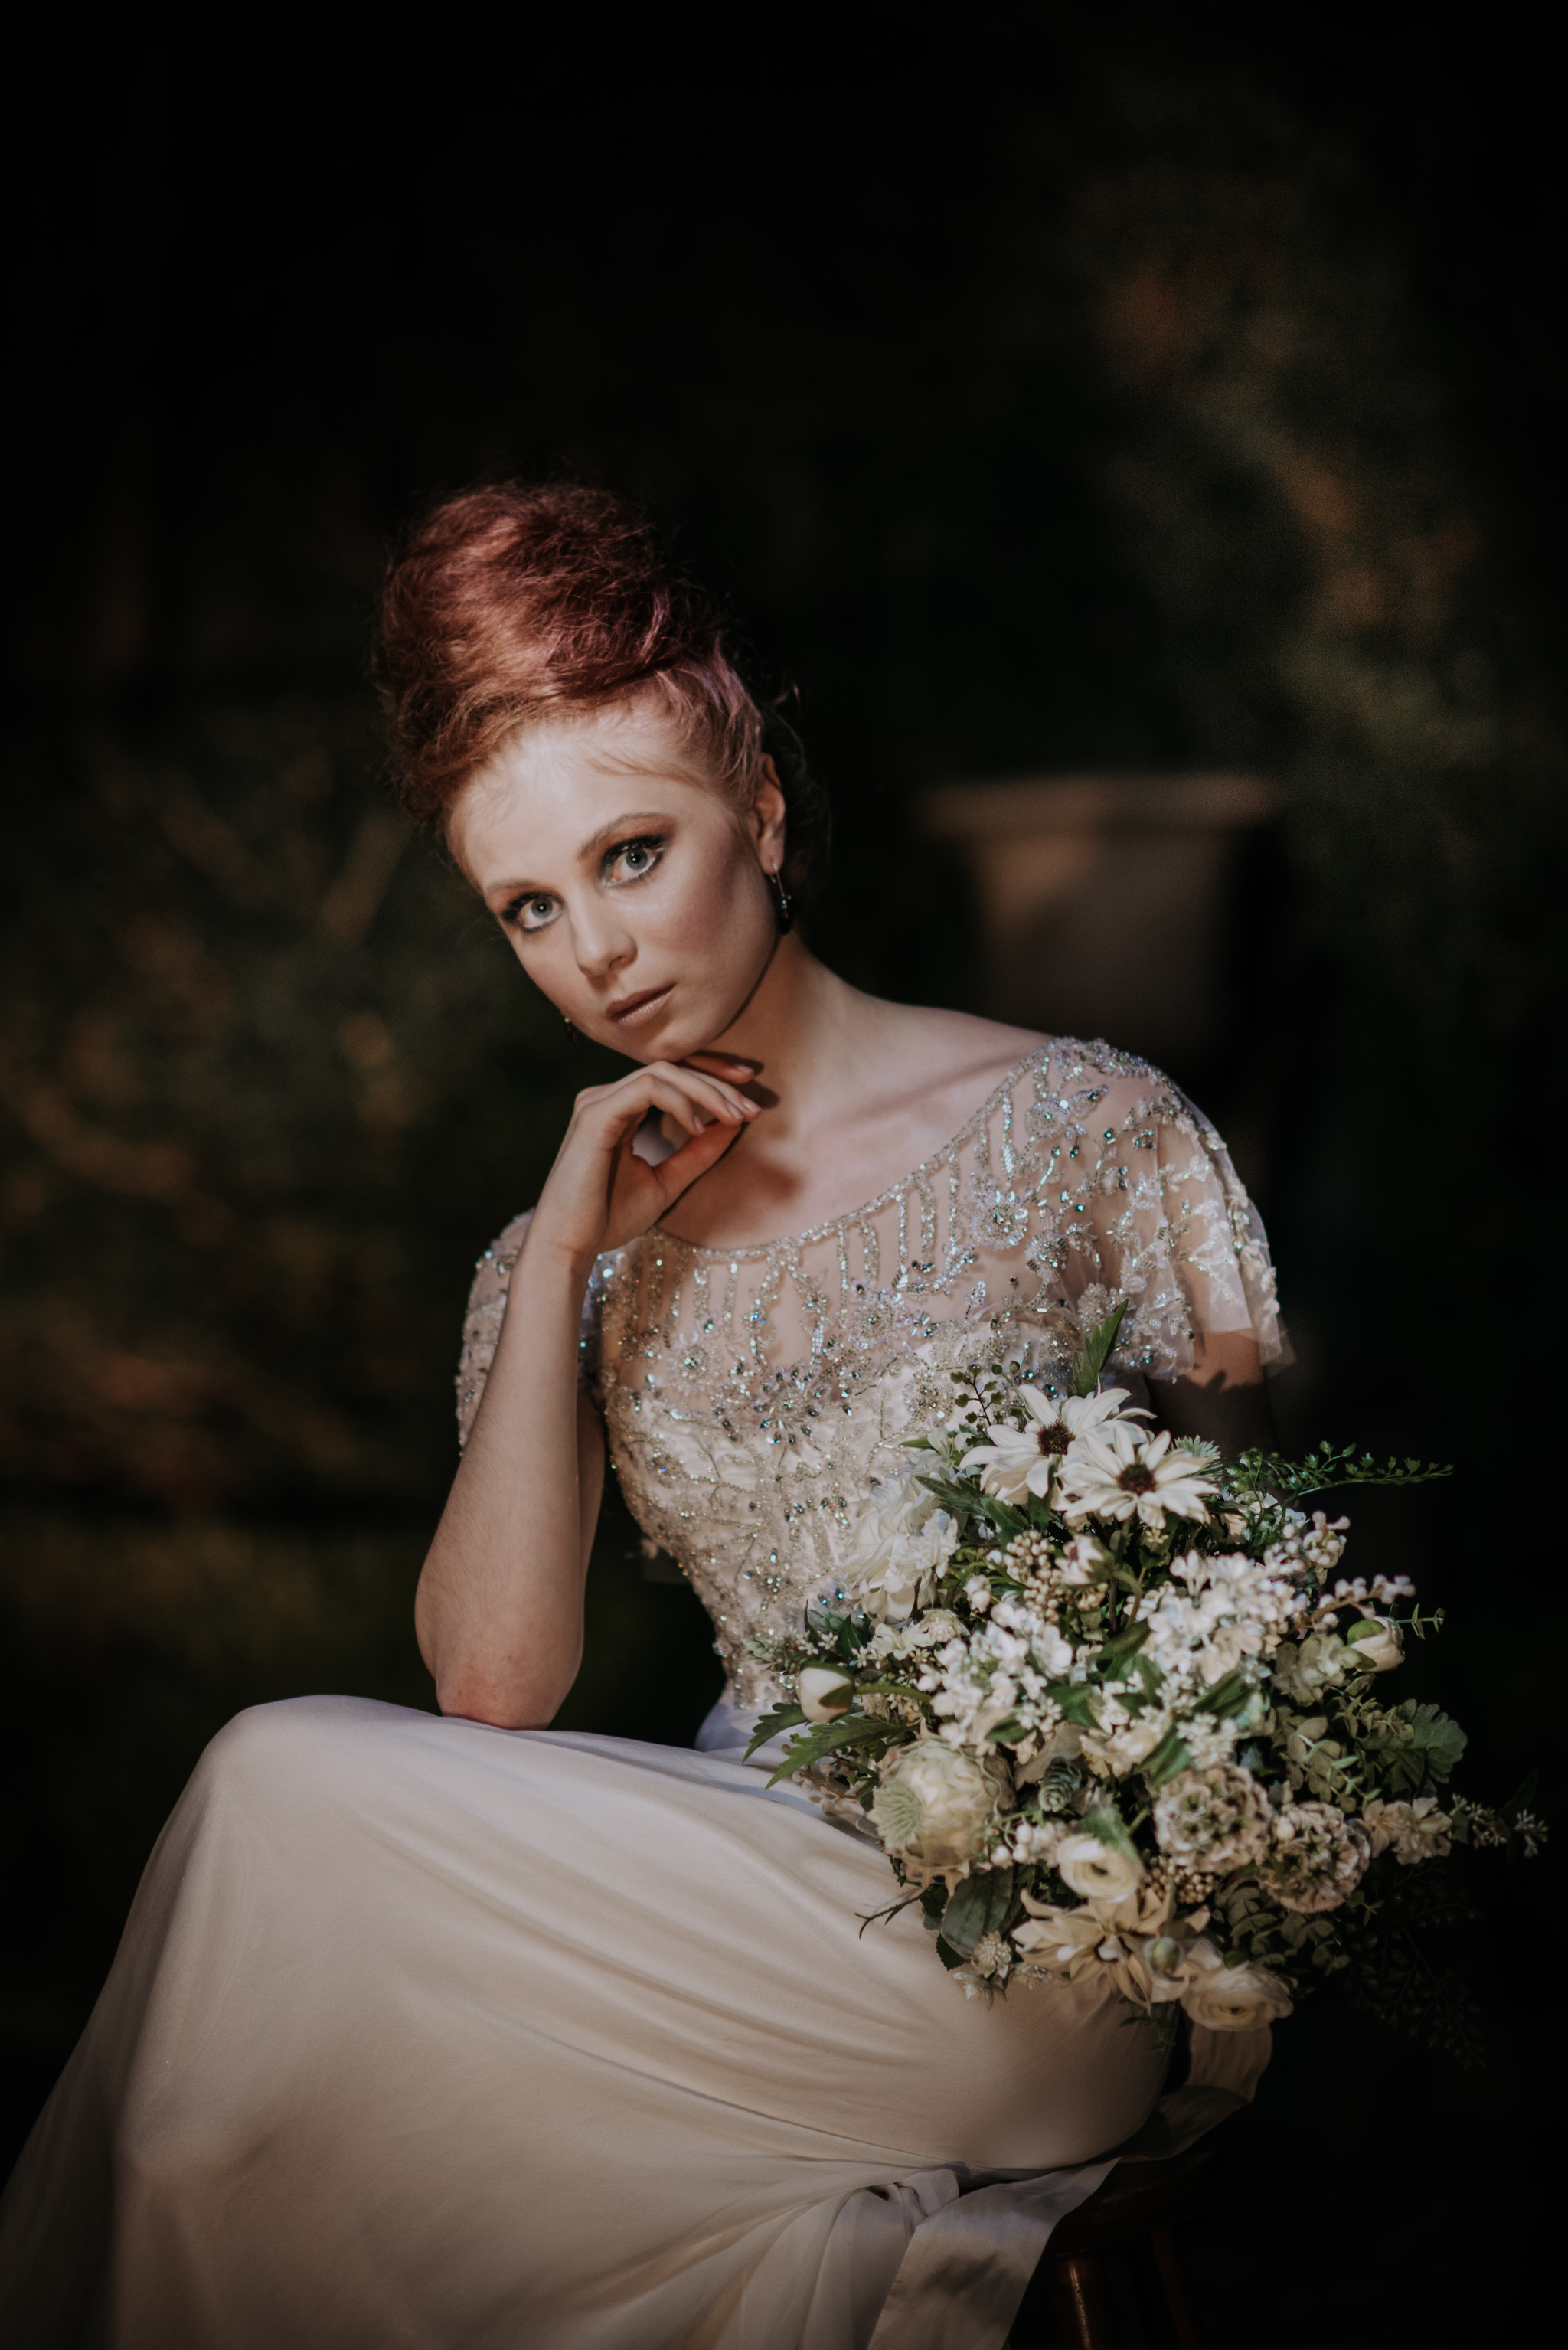 LOVELENSCAPES PHOTOGRAPHY X ANNA CAMPBELL BRIDAL X LEMAE MAKEUP ARTISTRY X BLOOMING LOVELY BOUQUETS X ERIN LIGHTFOOT X LITTLE WHITE COUTURE • 39.jpg